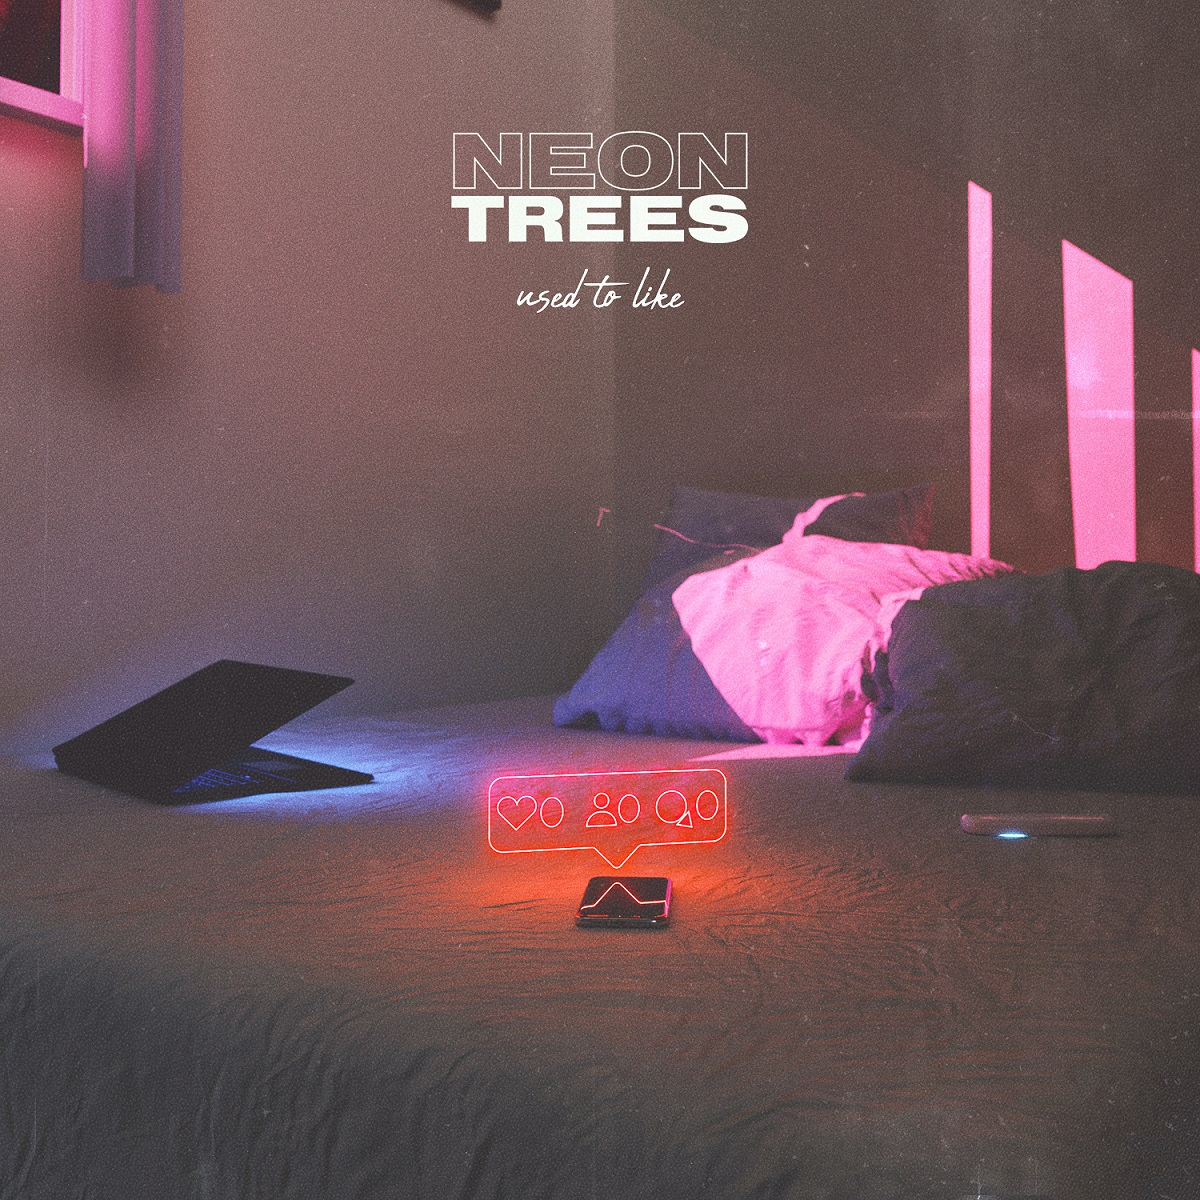 Used to Like - Neon Trees